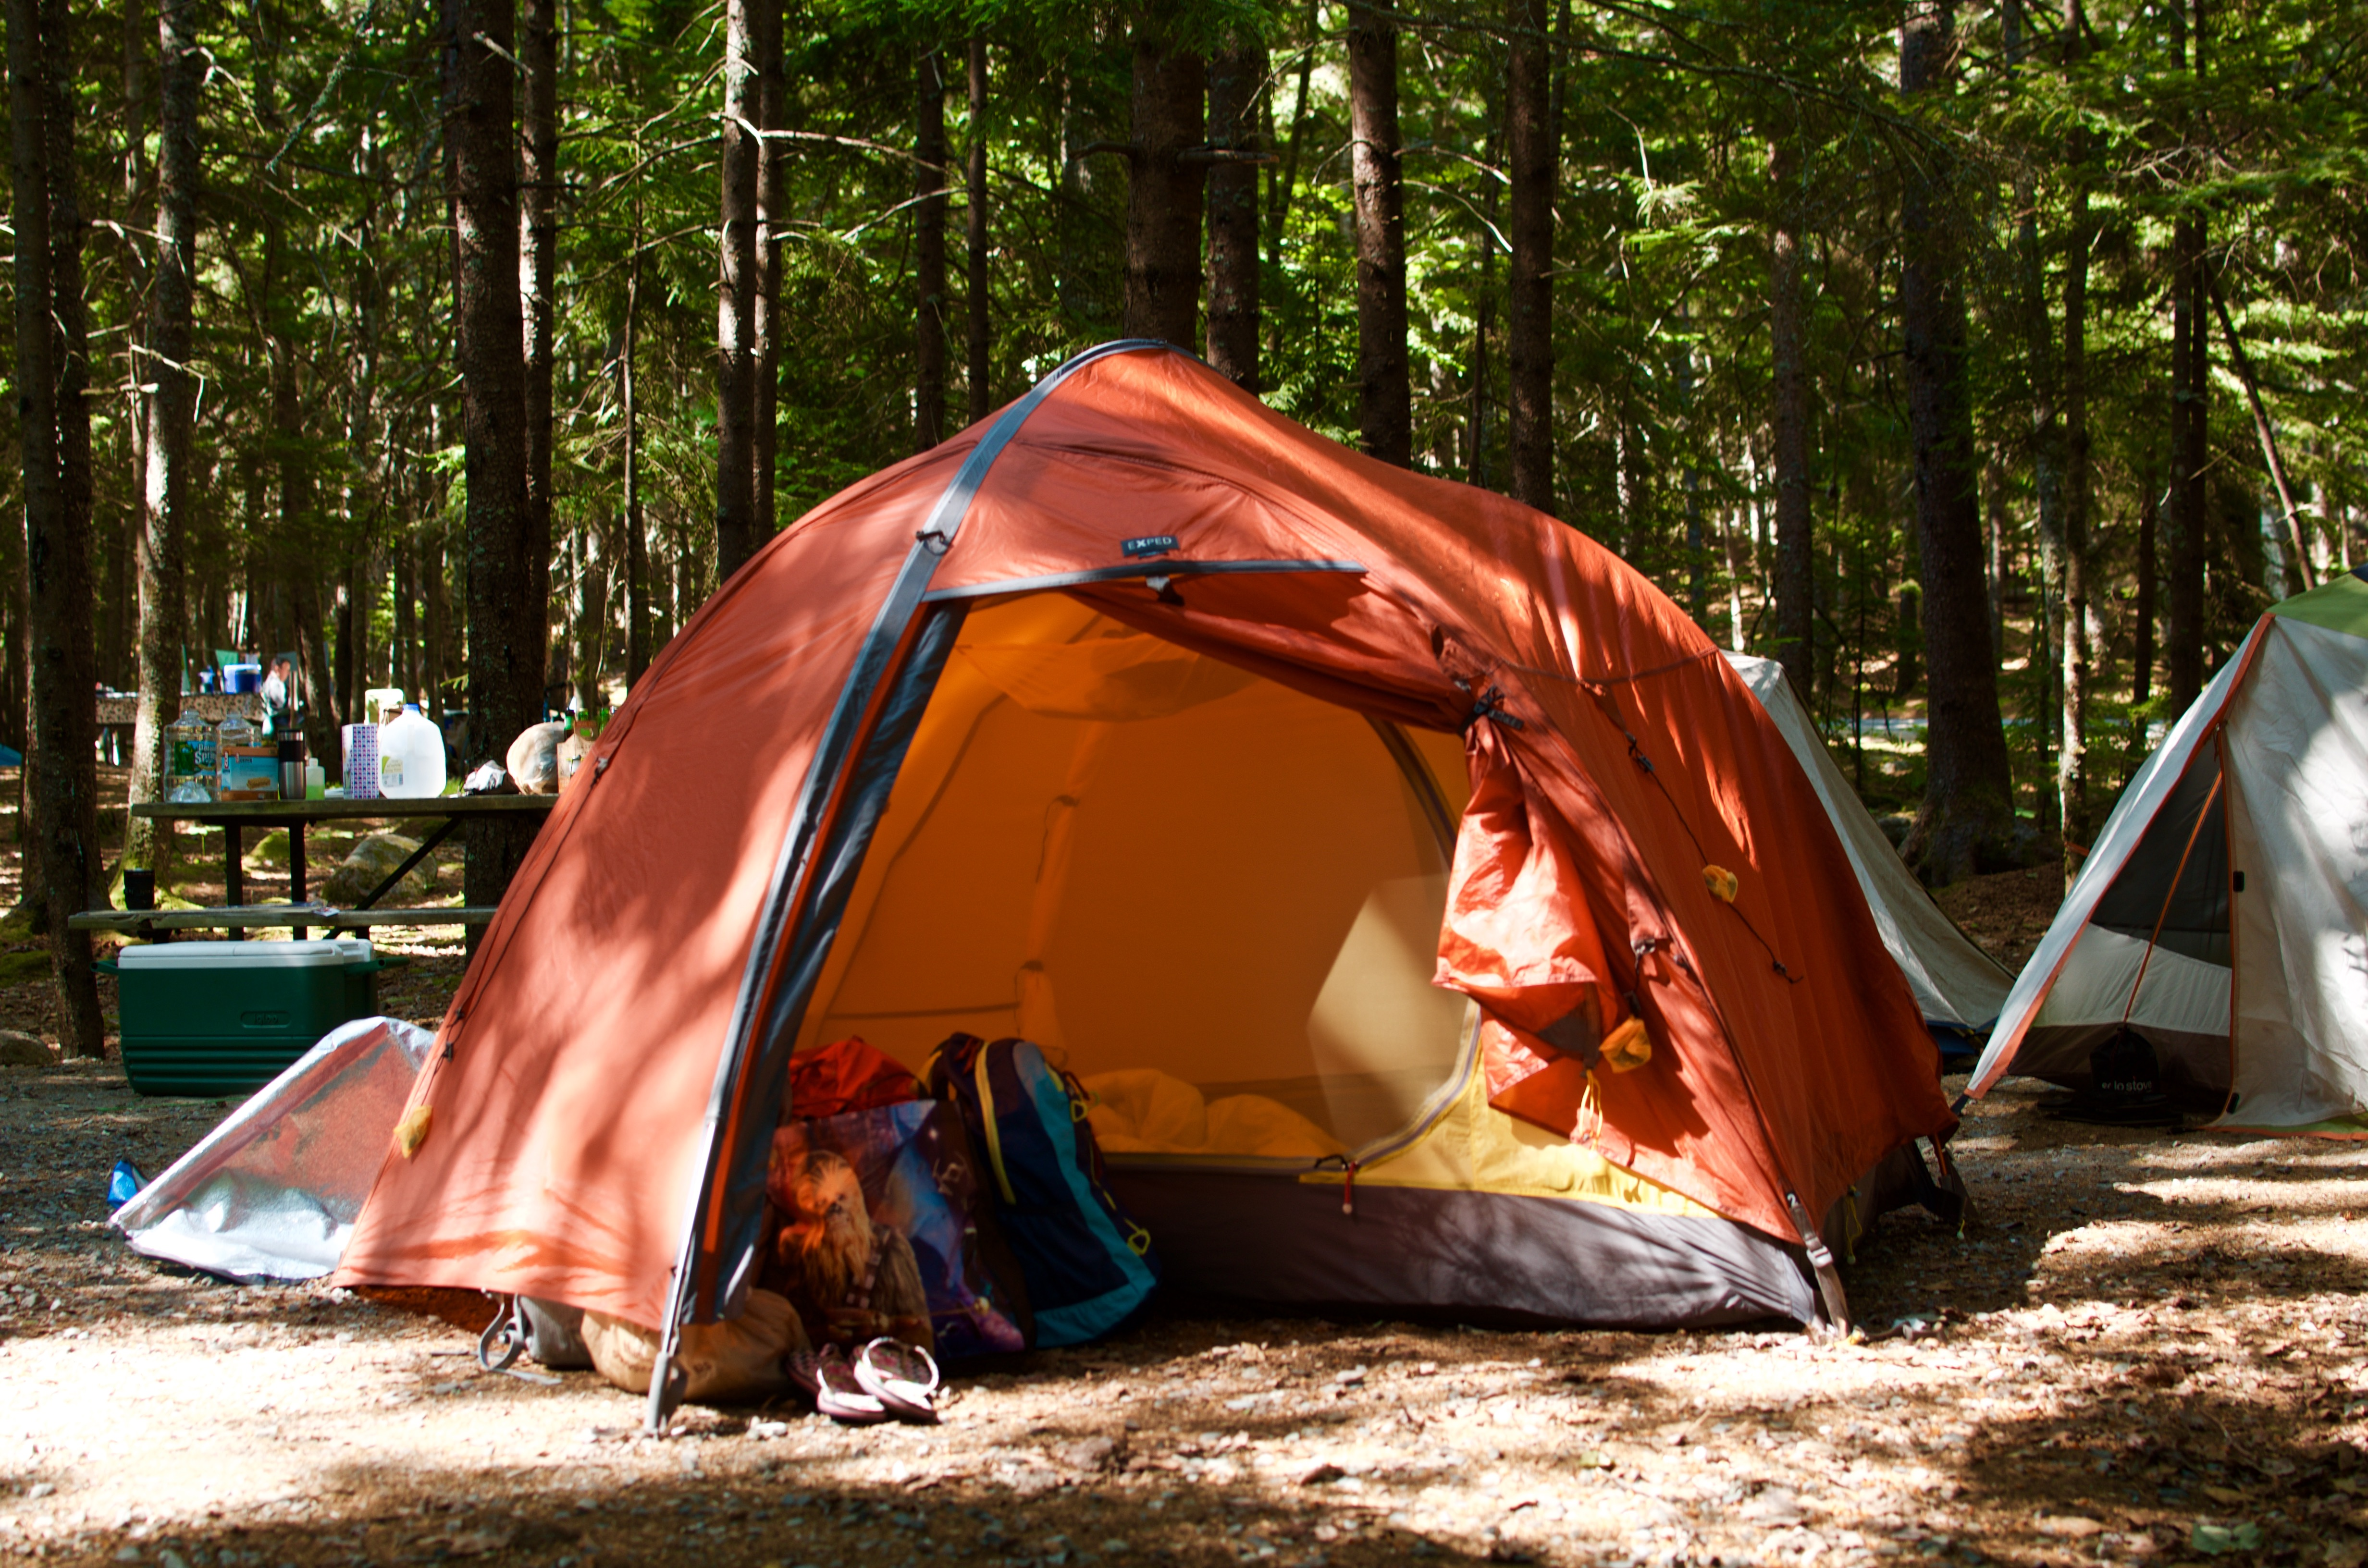 MAX_0830 & 6-Month Review: The Exped Orion II 4-Season Tent u2013 Max The Cyclist